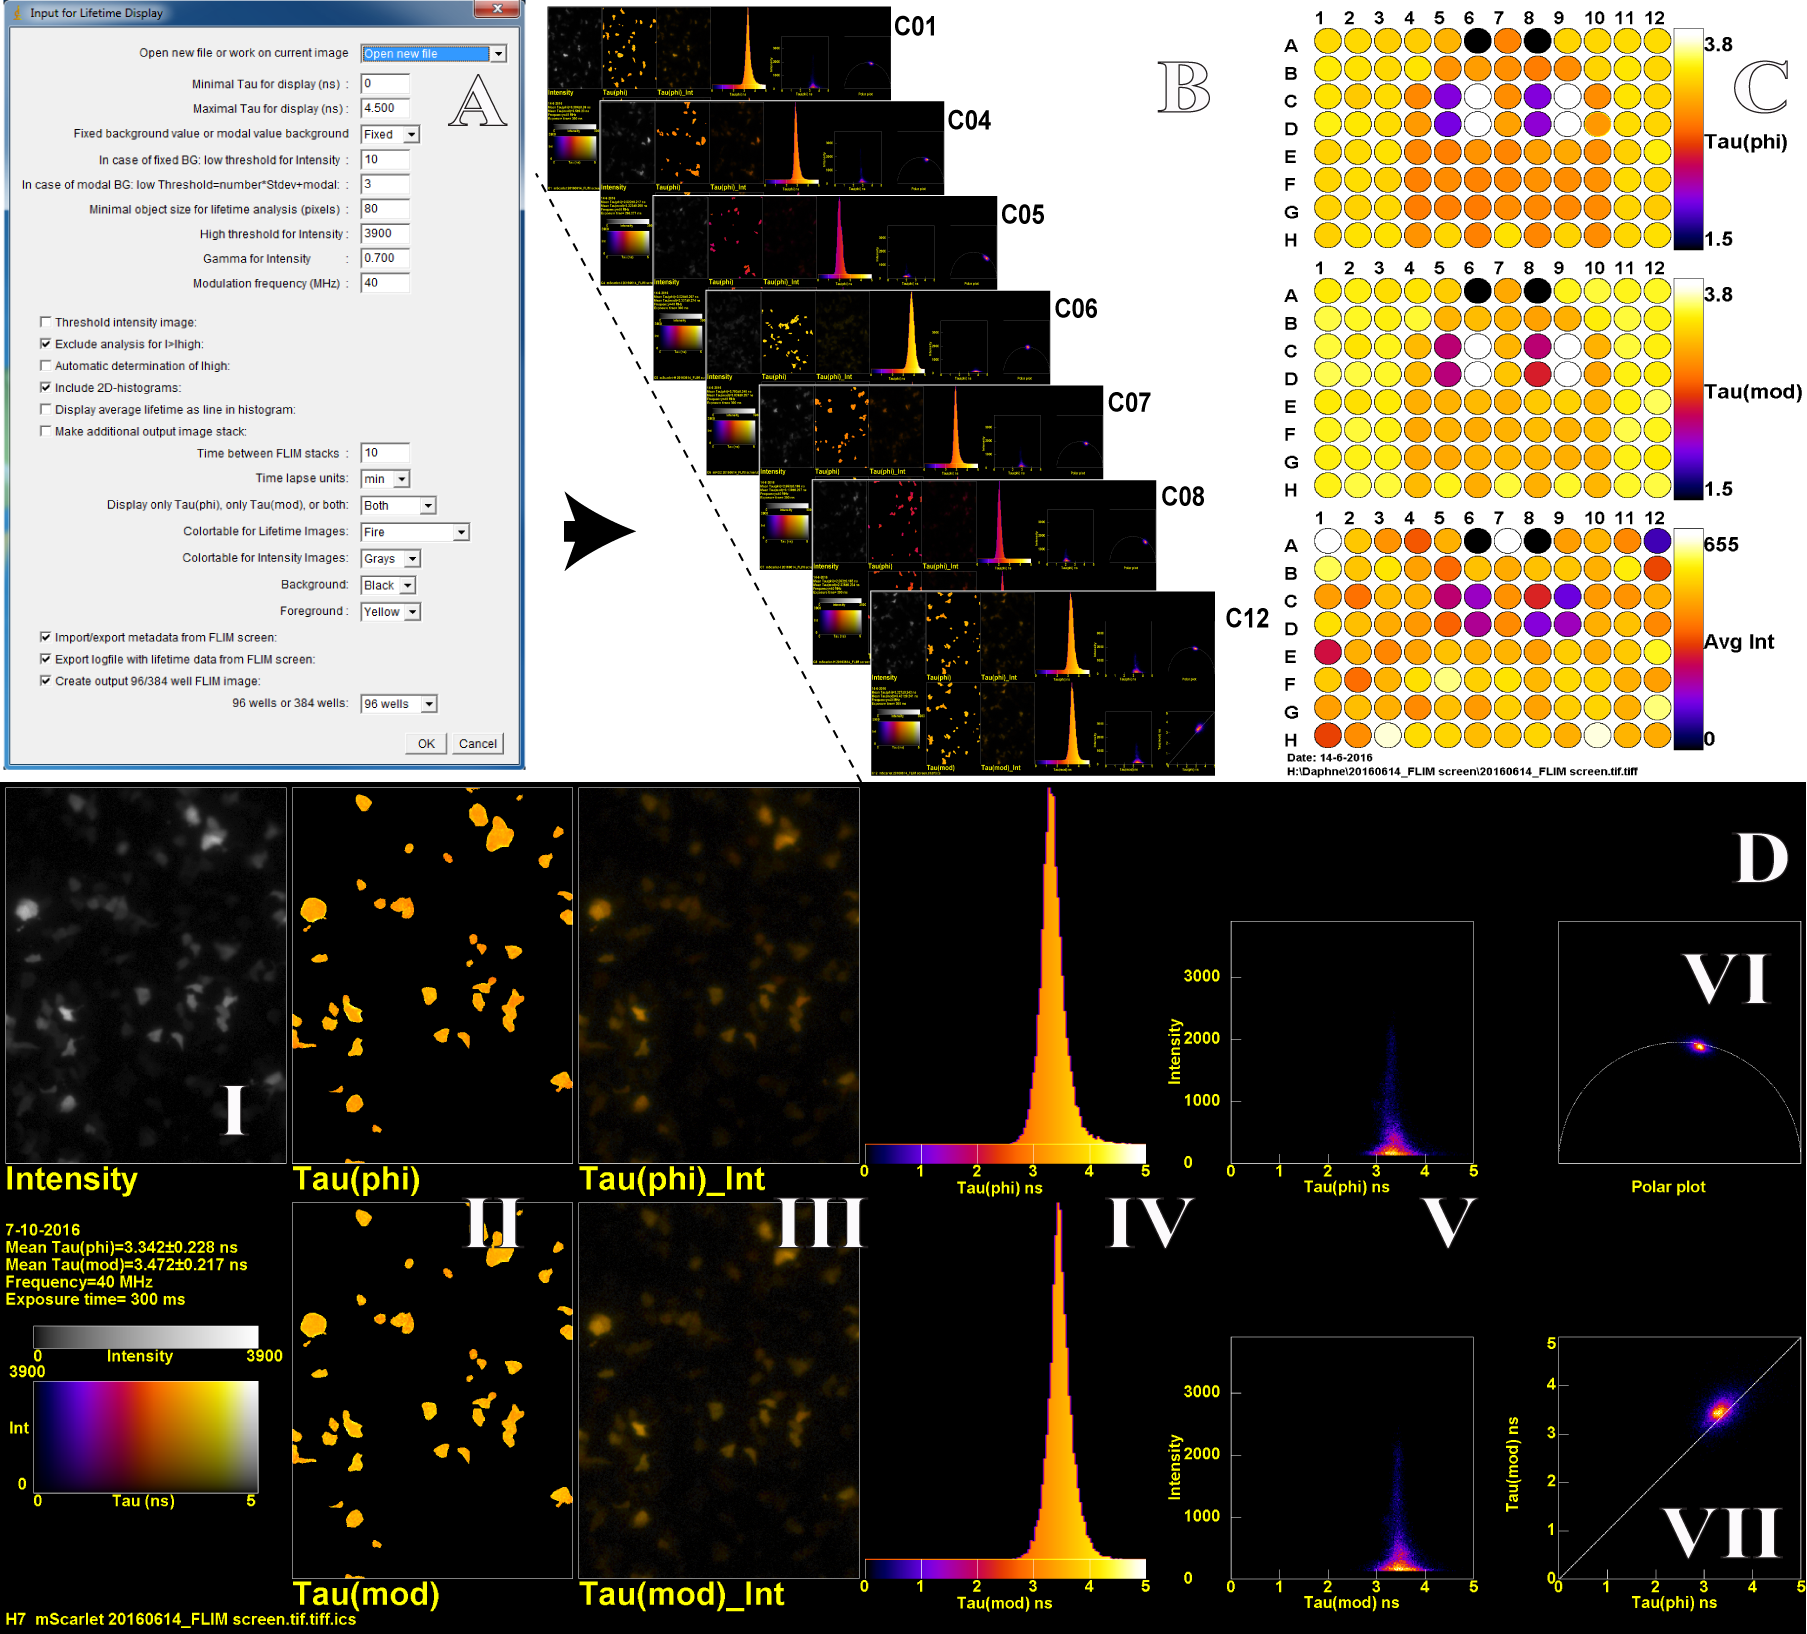 Figure 2 . An ImageJ macro (A) allows to set several processing and display parameters and generates a TIF stack with display figures for all wells present in the hyperstack (B) and a 96-well layout with the mean lifetime data (C). A detailed FLIM analysis from one well (D), the TIF stack (B) containing an extensive FLIM analysis of each well. The multi-panel D contains: grayscale (I), lifetime false color images (II), lifetime false color image with intensity overlay (III), a lifetime histogram (IV), a scatterplot of the lifetime versus the intensity (V), the polar plot (VI) and a scatterplot of phase (phi) versus modulation (mod) lifetime (VII).